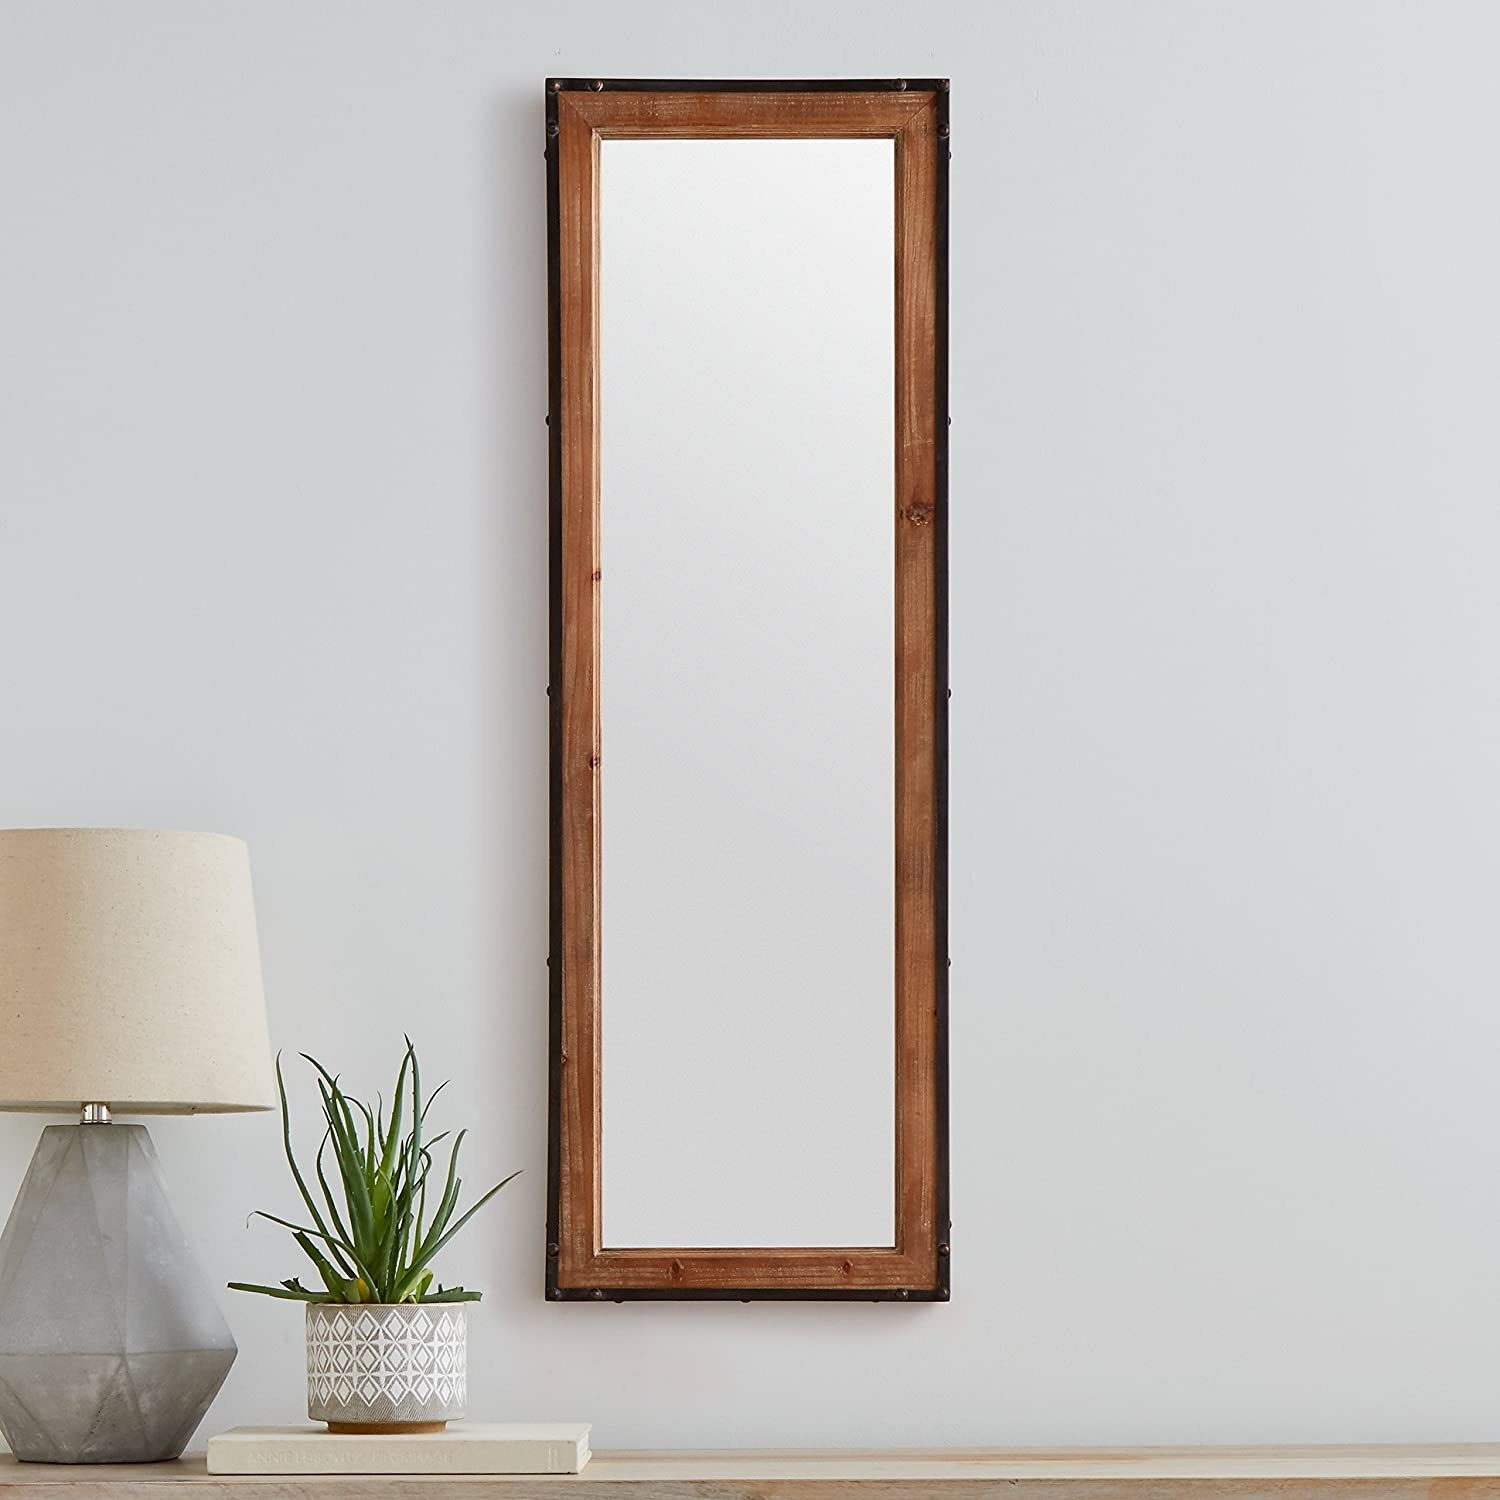 A full length mirror on a wall